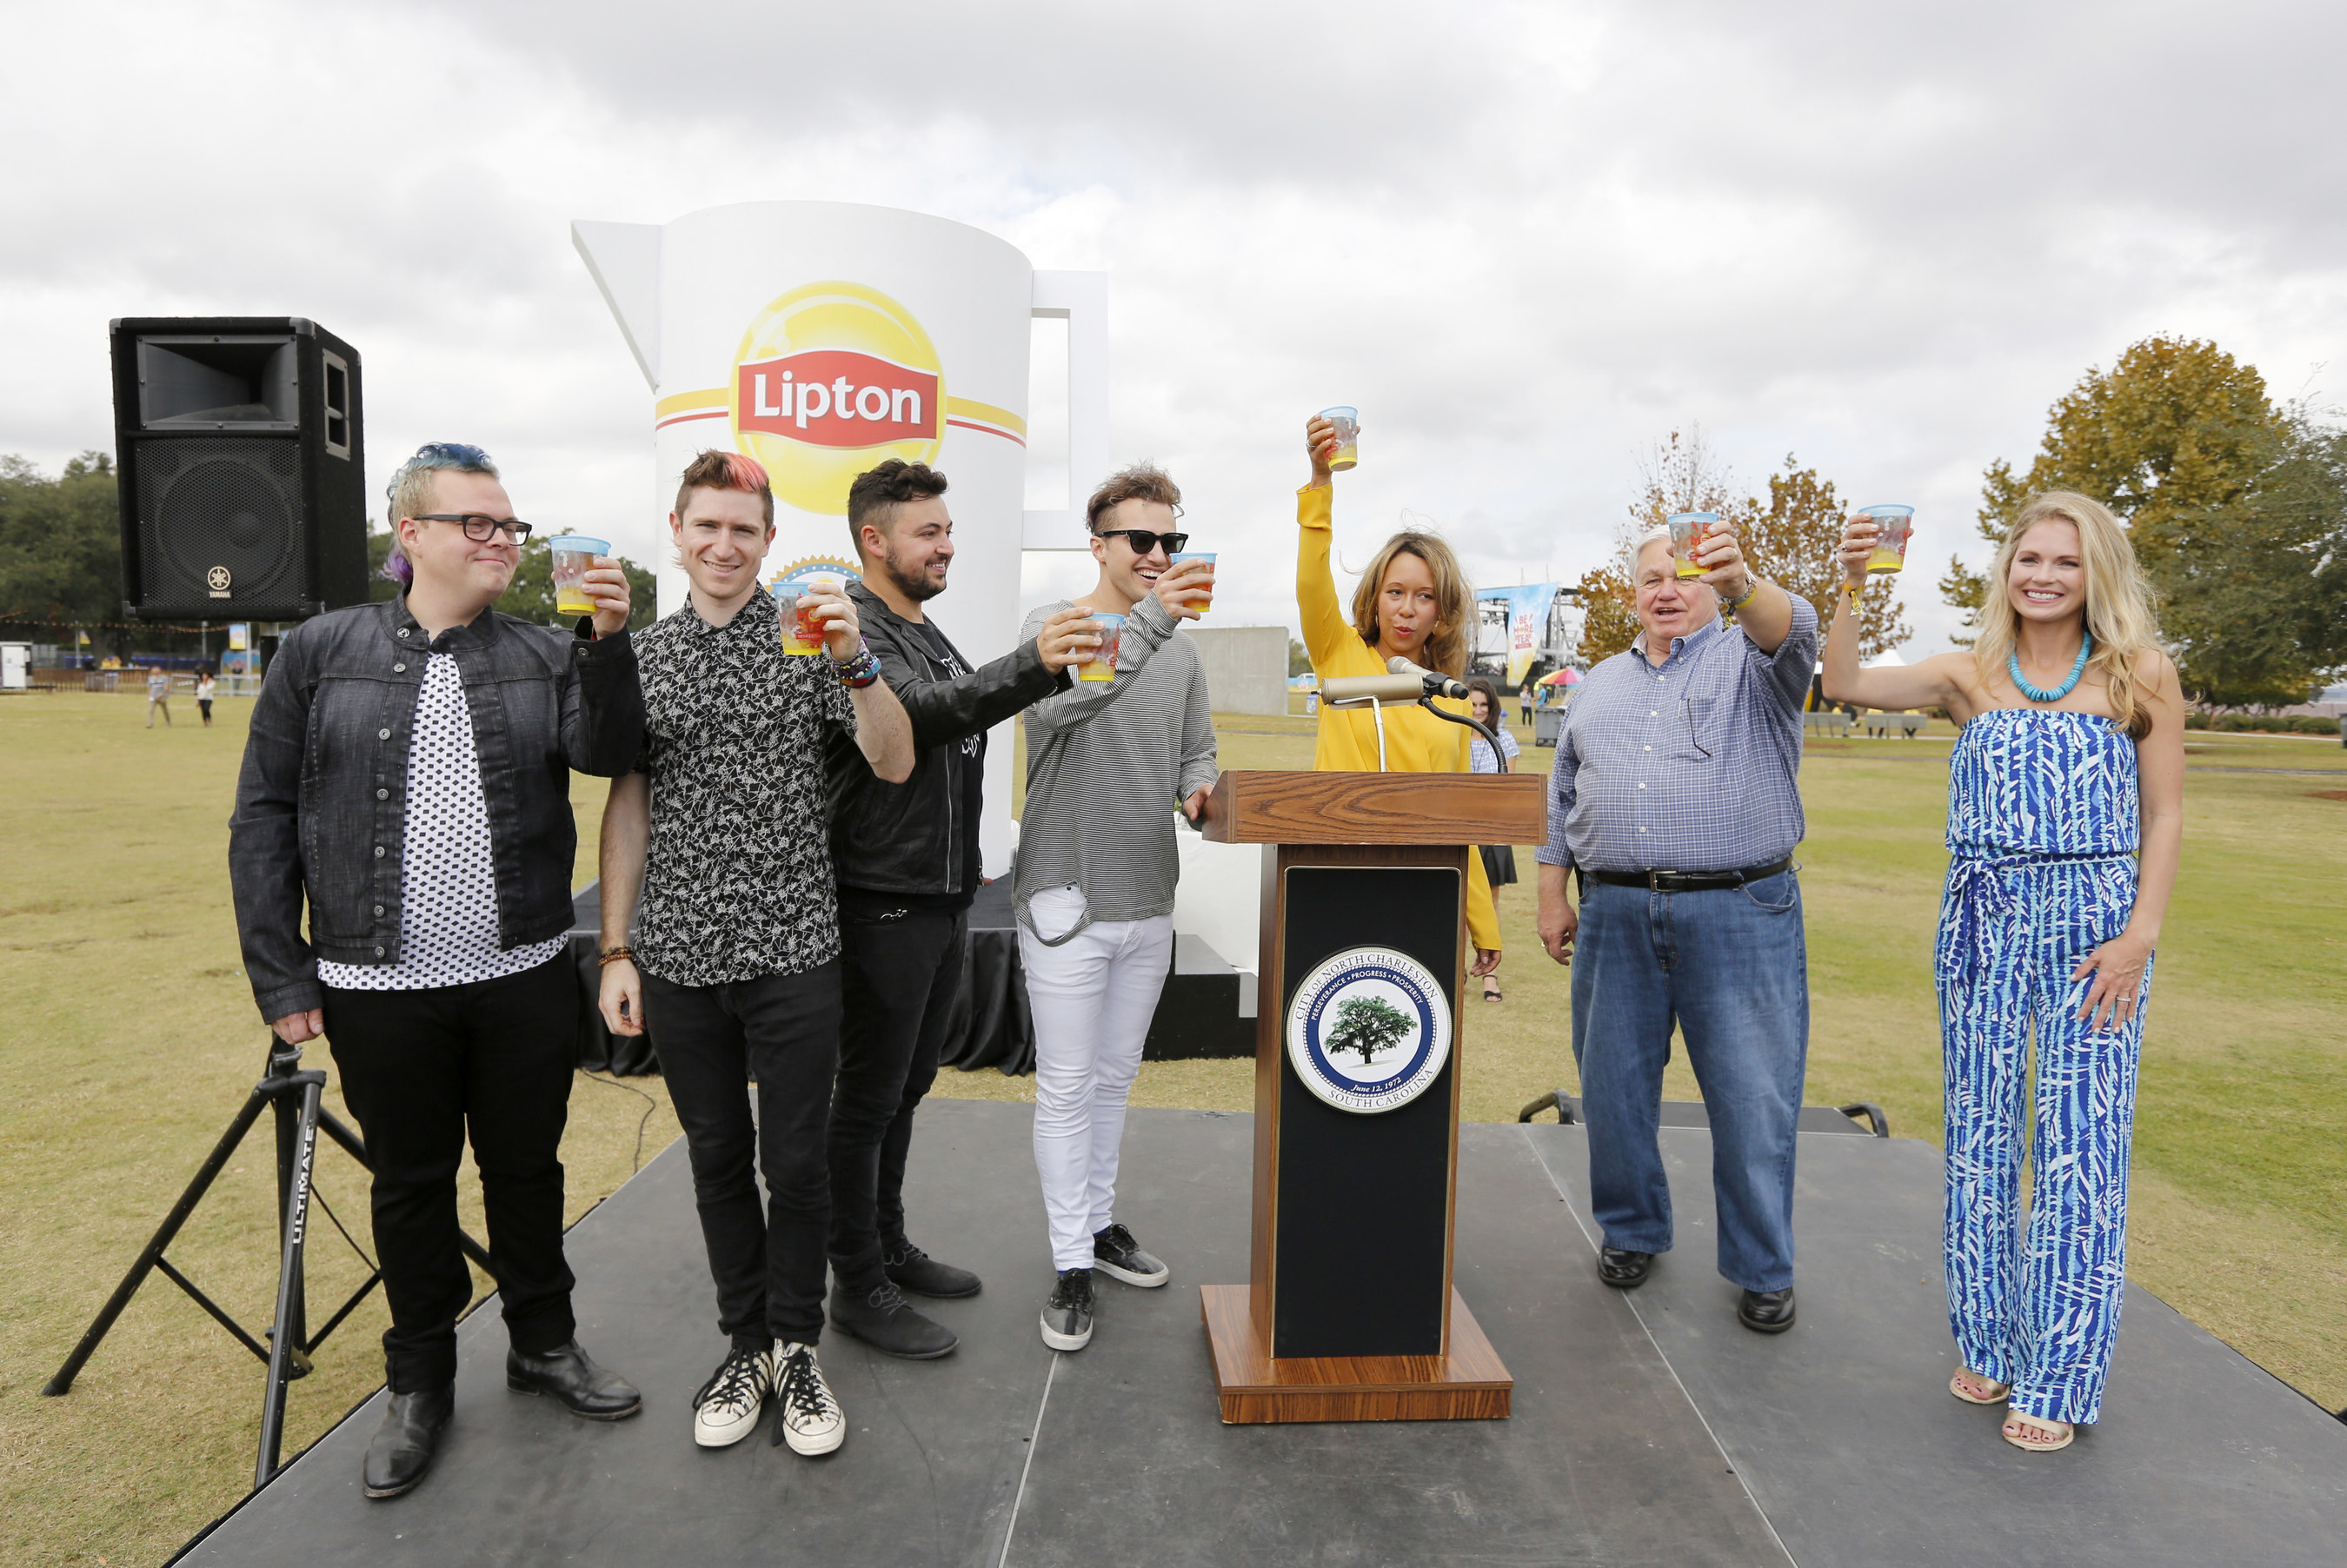 As part of Lipton's 125th anniversary, Lipton broke the Guinness World Records title for the Largest Iced Tea at the Be More Tea Festival in North Charleston, S.C. on Oct 24, 2015. Local celebrity Cameran Eubanks, Walk The Moon, North Charleston Mayor Keith Summey and Lipton's Director of Marketing Melanie Watts toasted to kick off the festival.